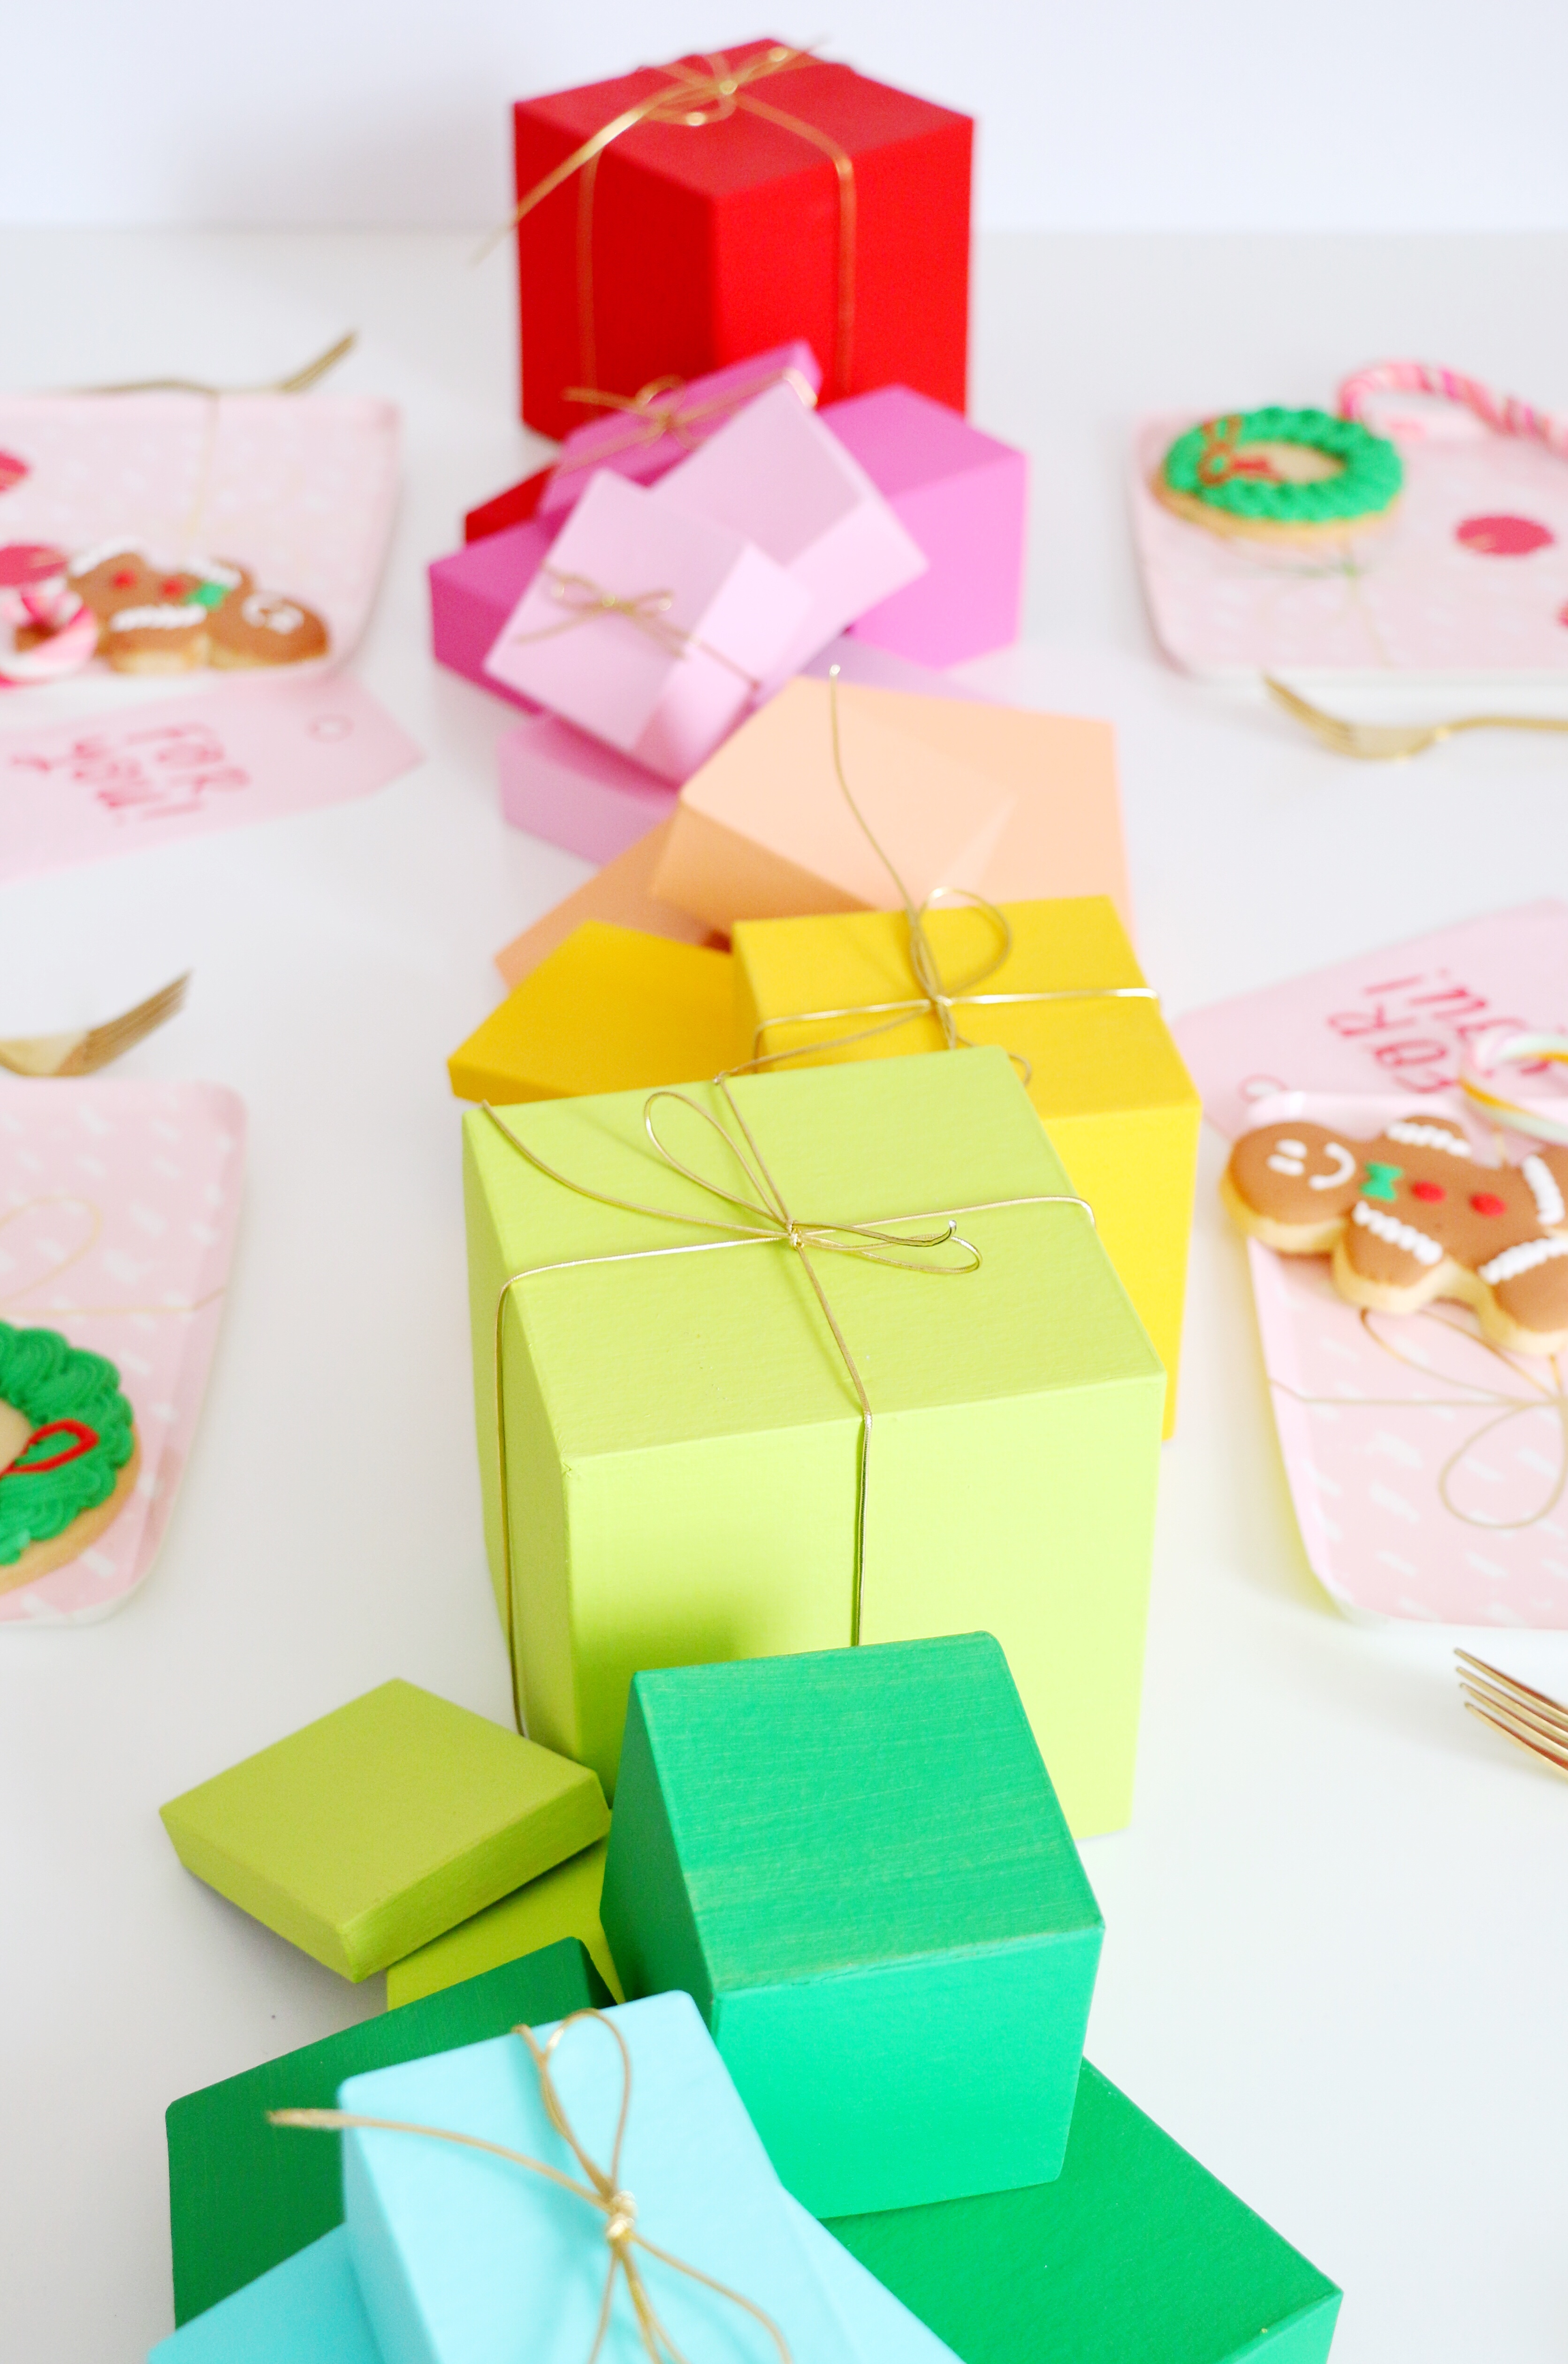 DIY rainbow gift box table runner for Christmas